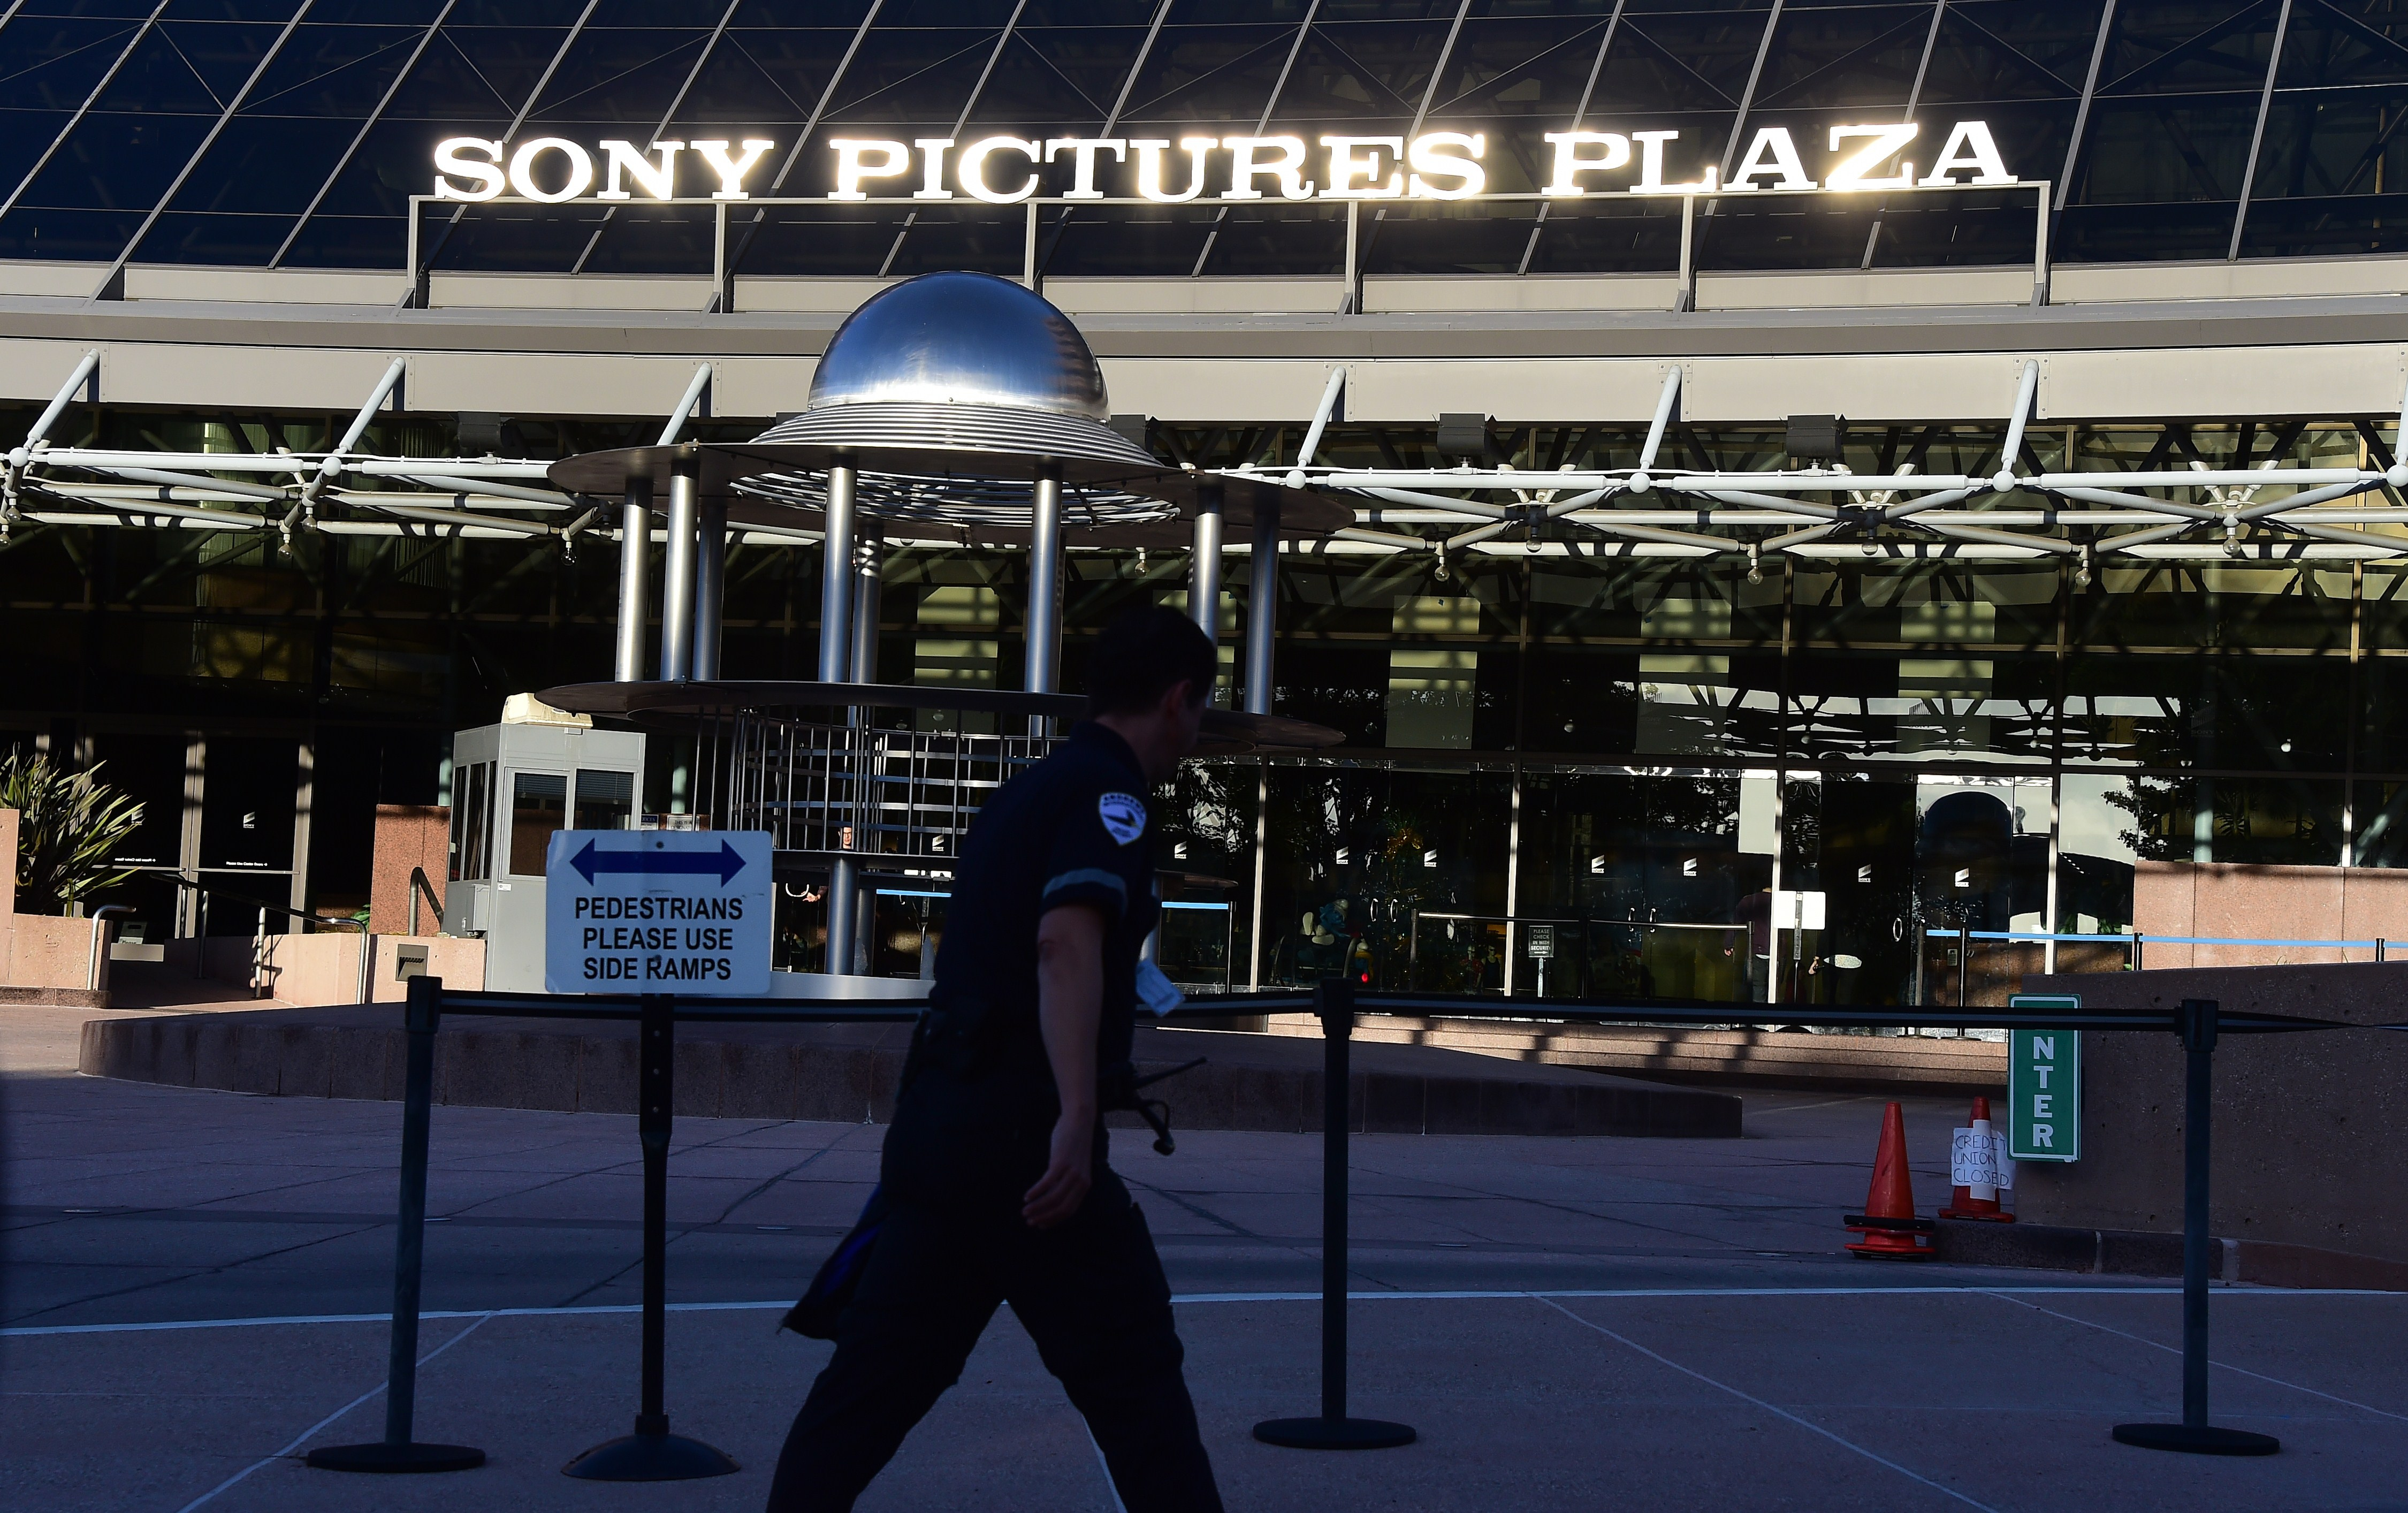 getty-sony-pictures-plaza.jpg